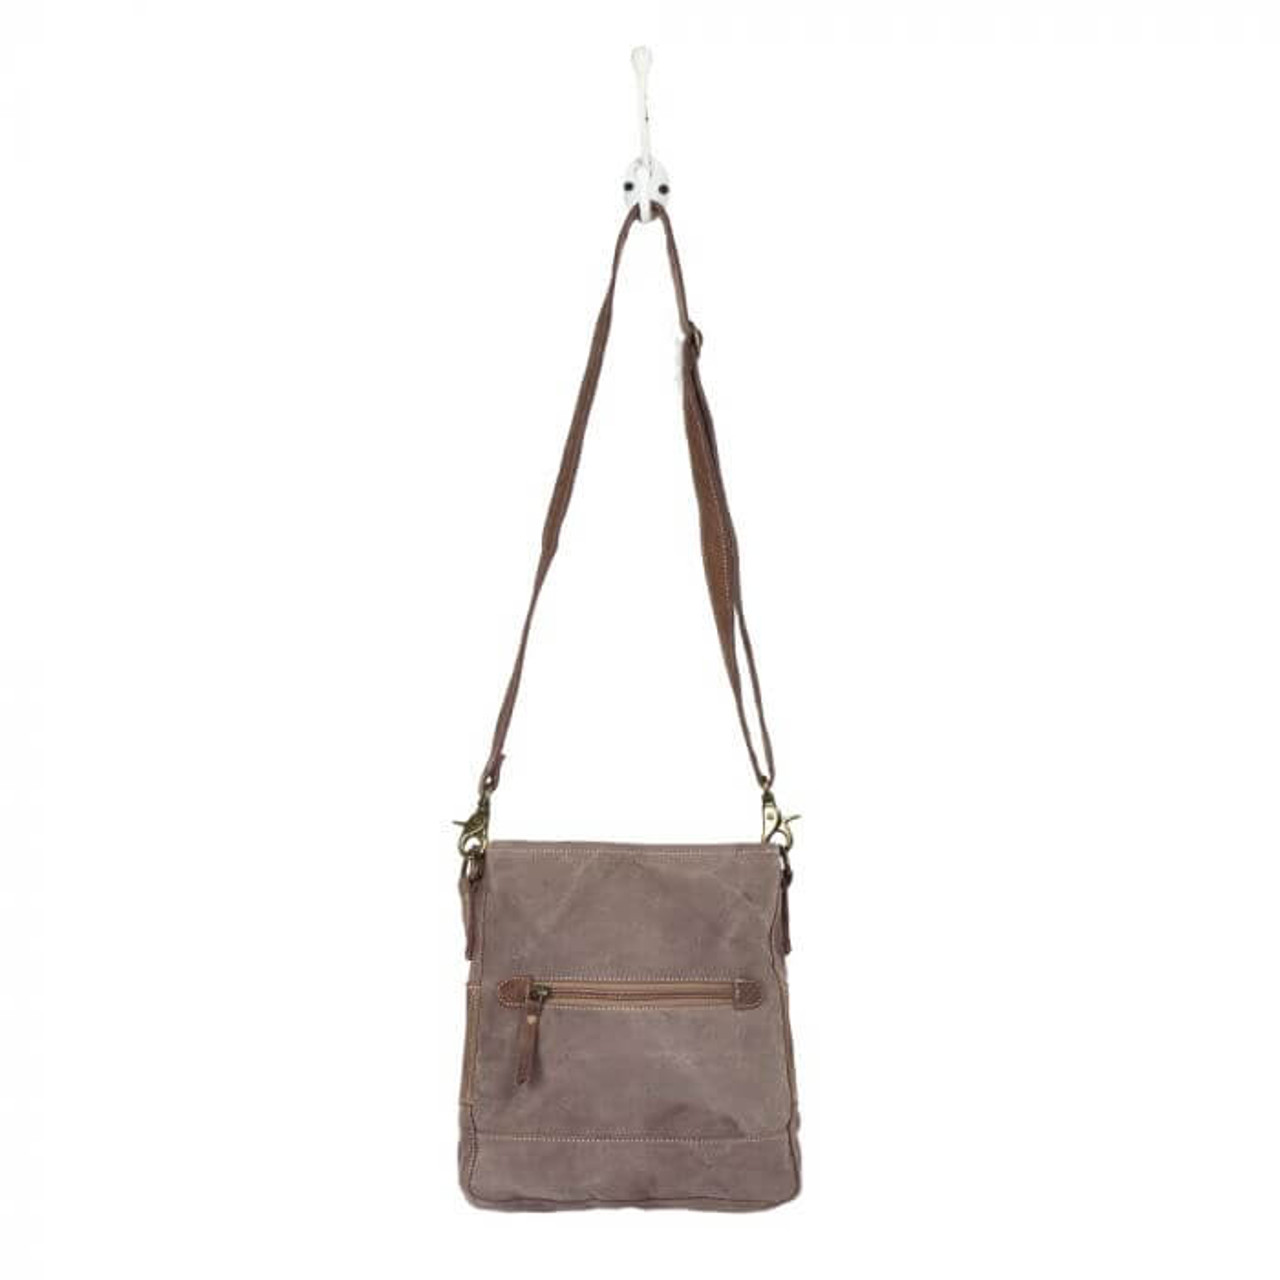 This canvas bag has chic fashion floral print pattern with hairon at the front bottom and leather details! This bag features one back pocket and zippered top closure to secure items inside and an adjustable canvas lined leather cross-body strap. Inside is fully lined and has two slip pockets and a zipper pocket.